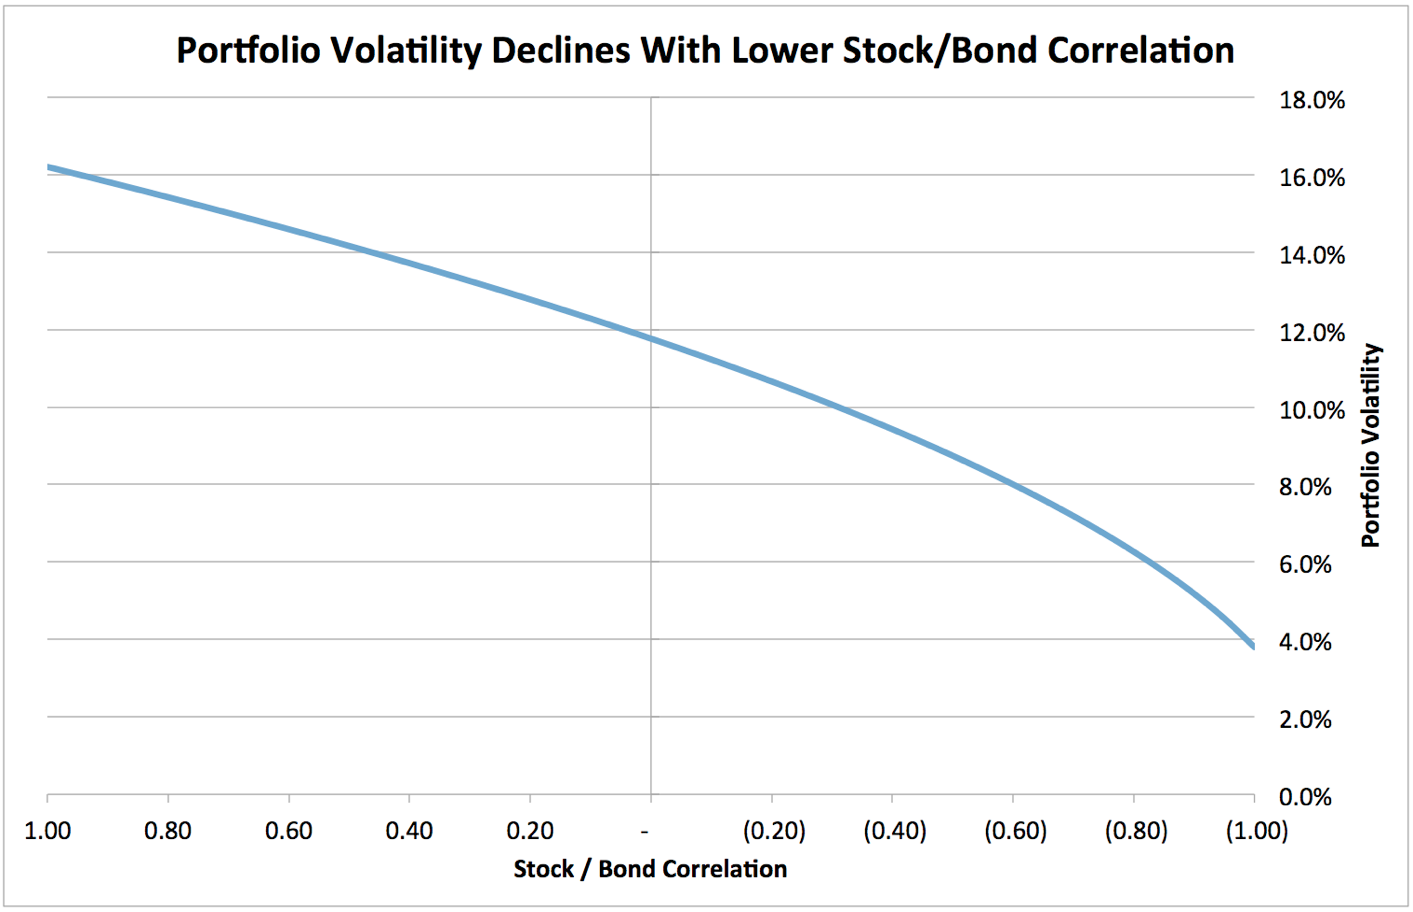 You Could Fly A 747 Through Those Ranges, And The Current Correlation Has  An Enormous Impact On Portfolio Volatility